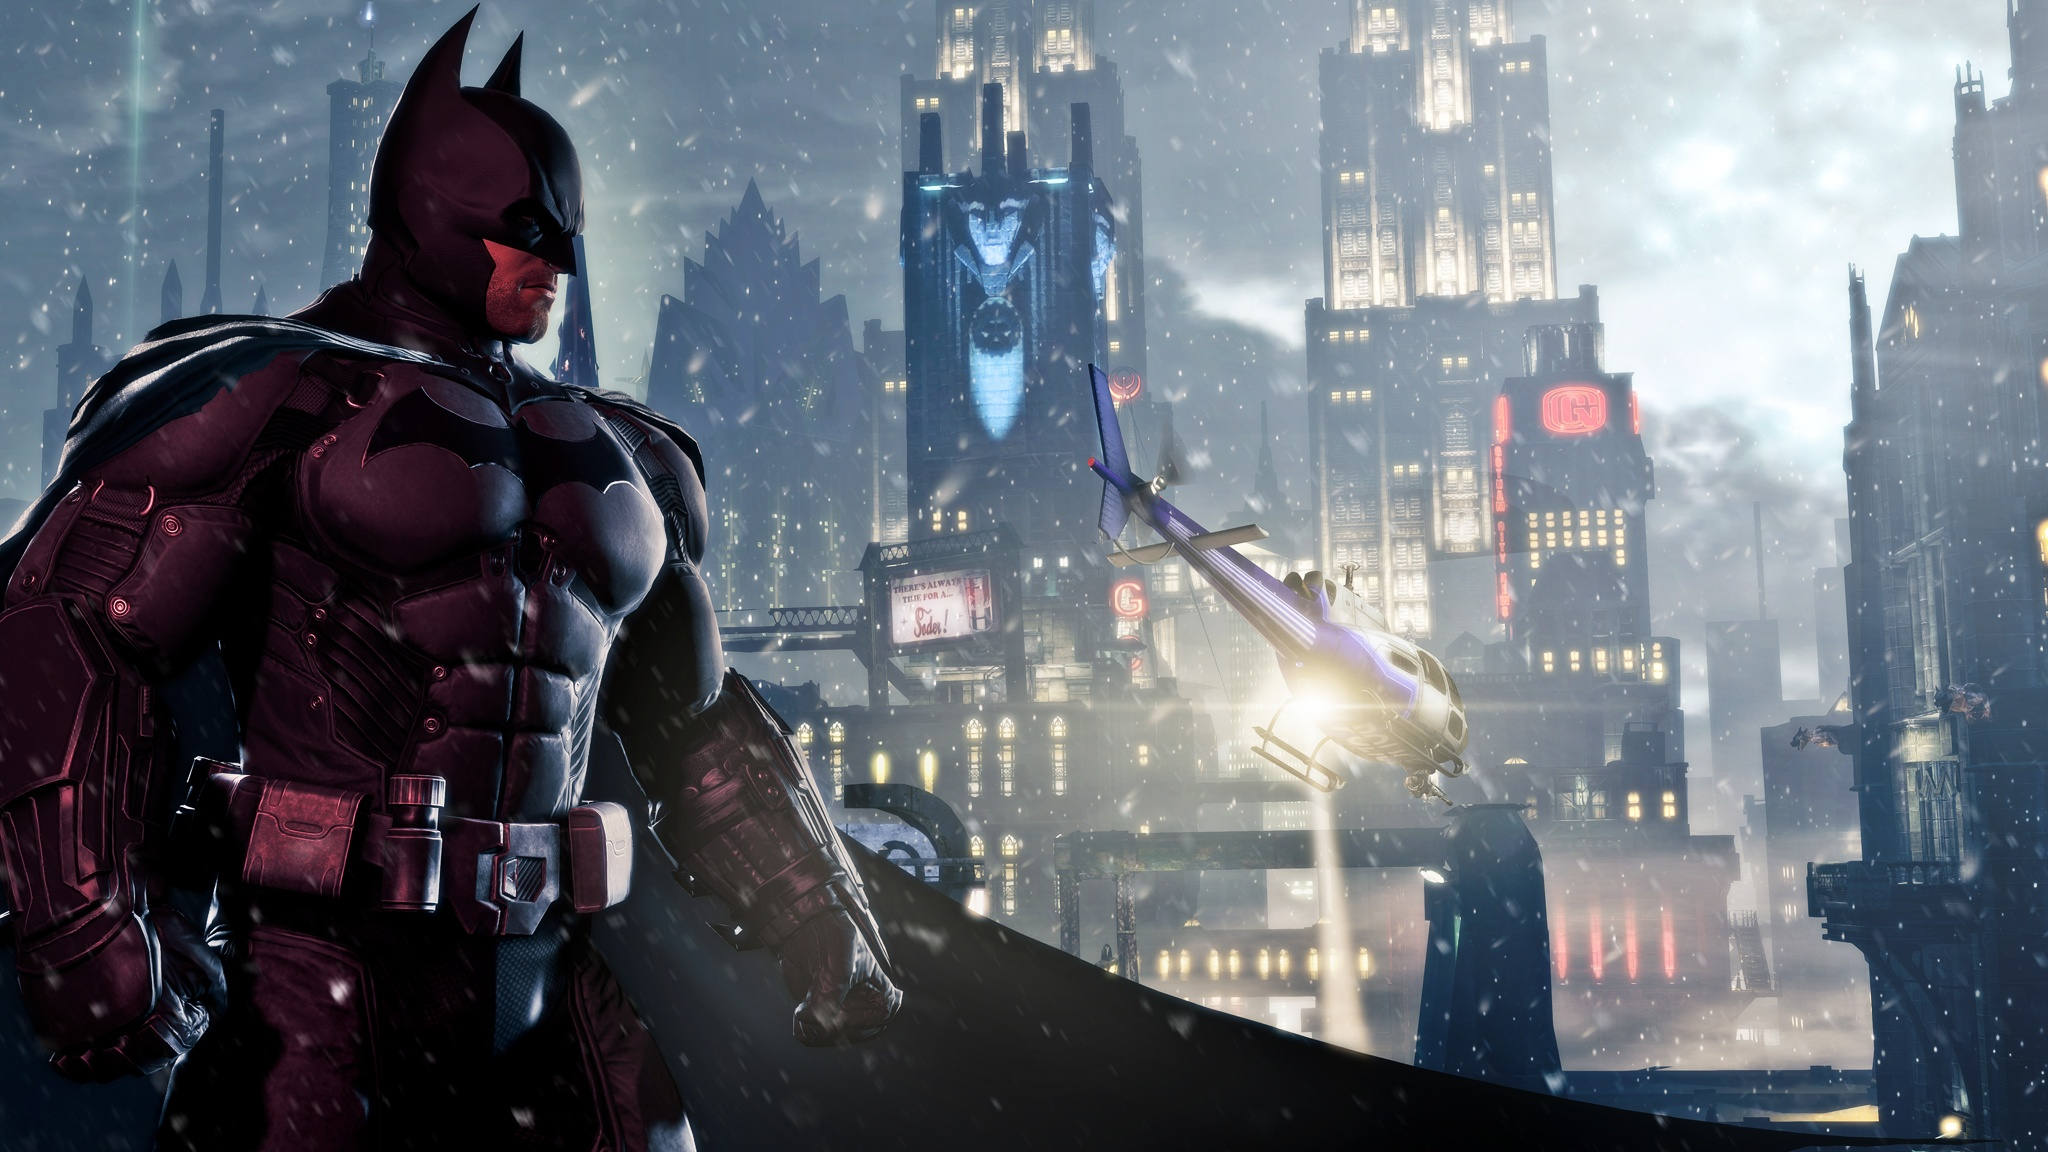 Batman: Arkham Knight y su maravilloso trailer presentado en E3 [#E32014] [CHANANANANA NEWS]